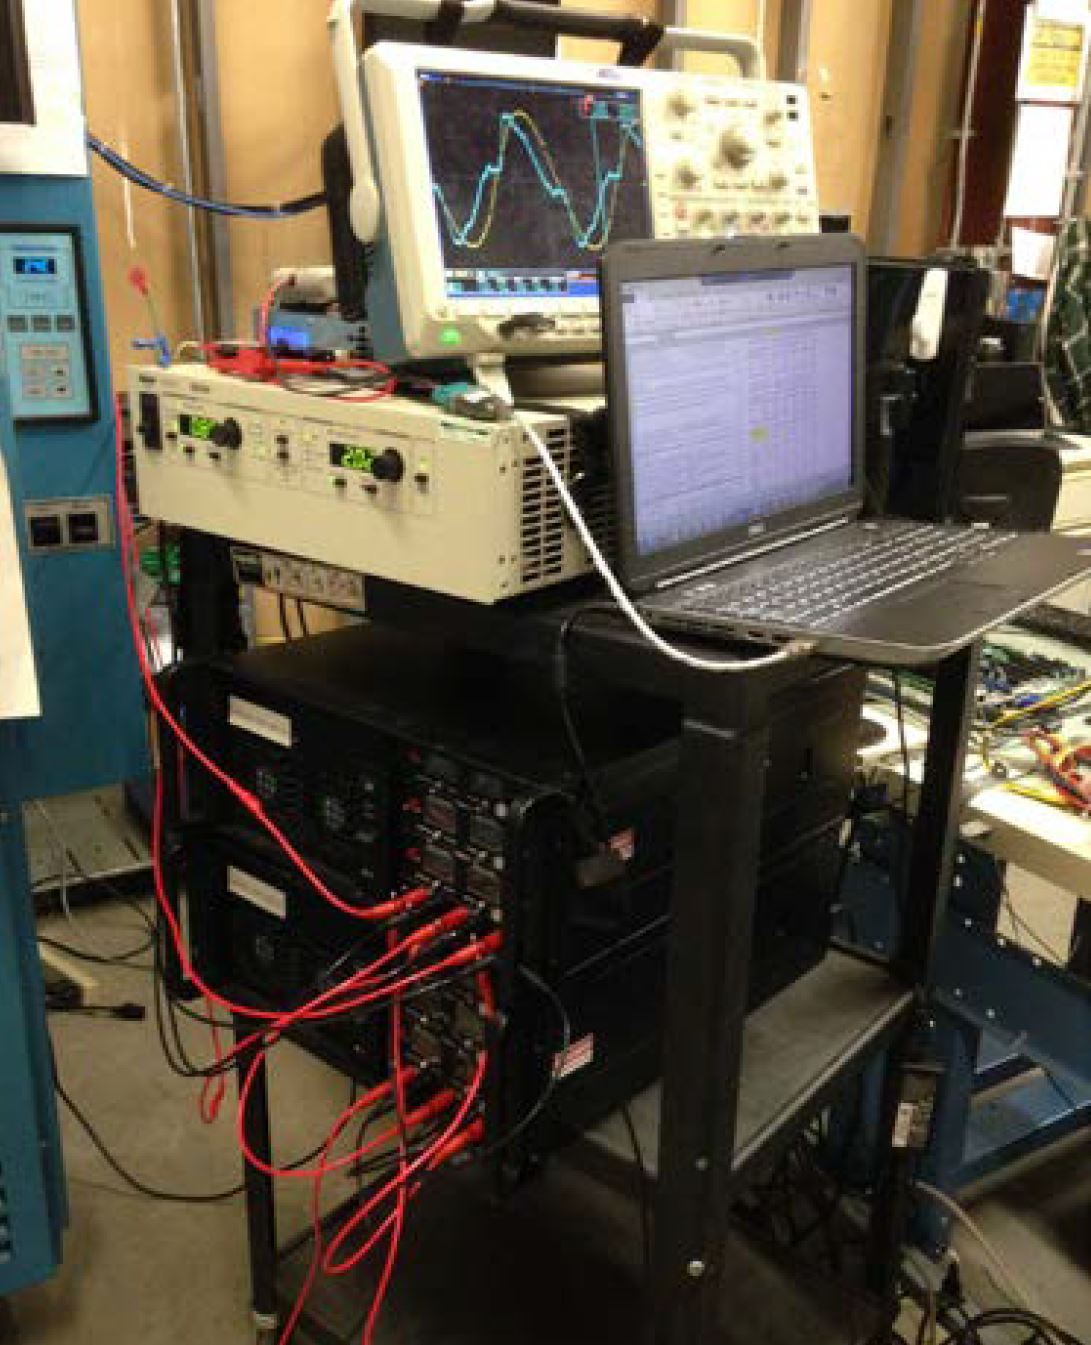 Whitepaper: Power Supply Testing: 400 HZ Operation - Crystal Group, Inc